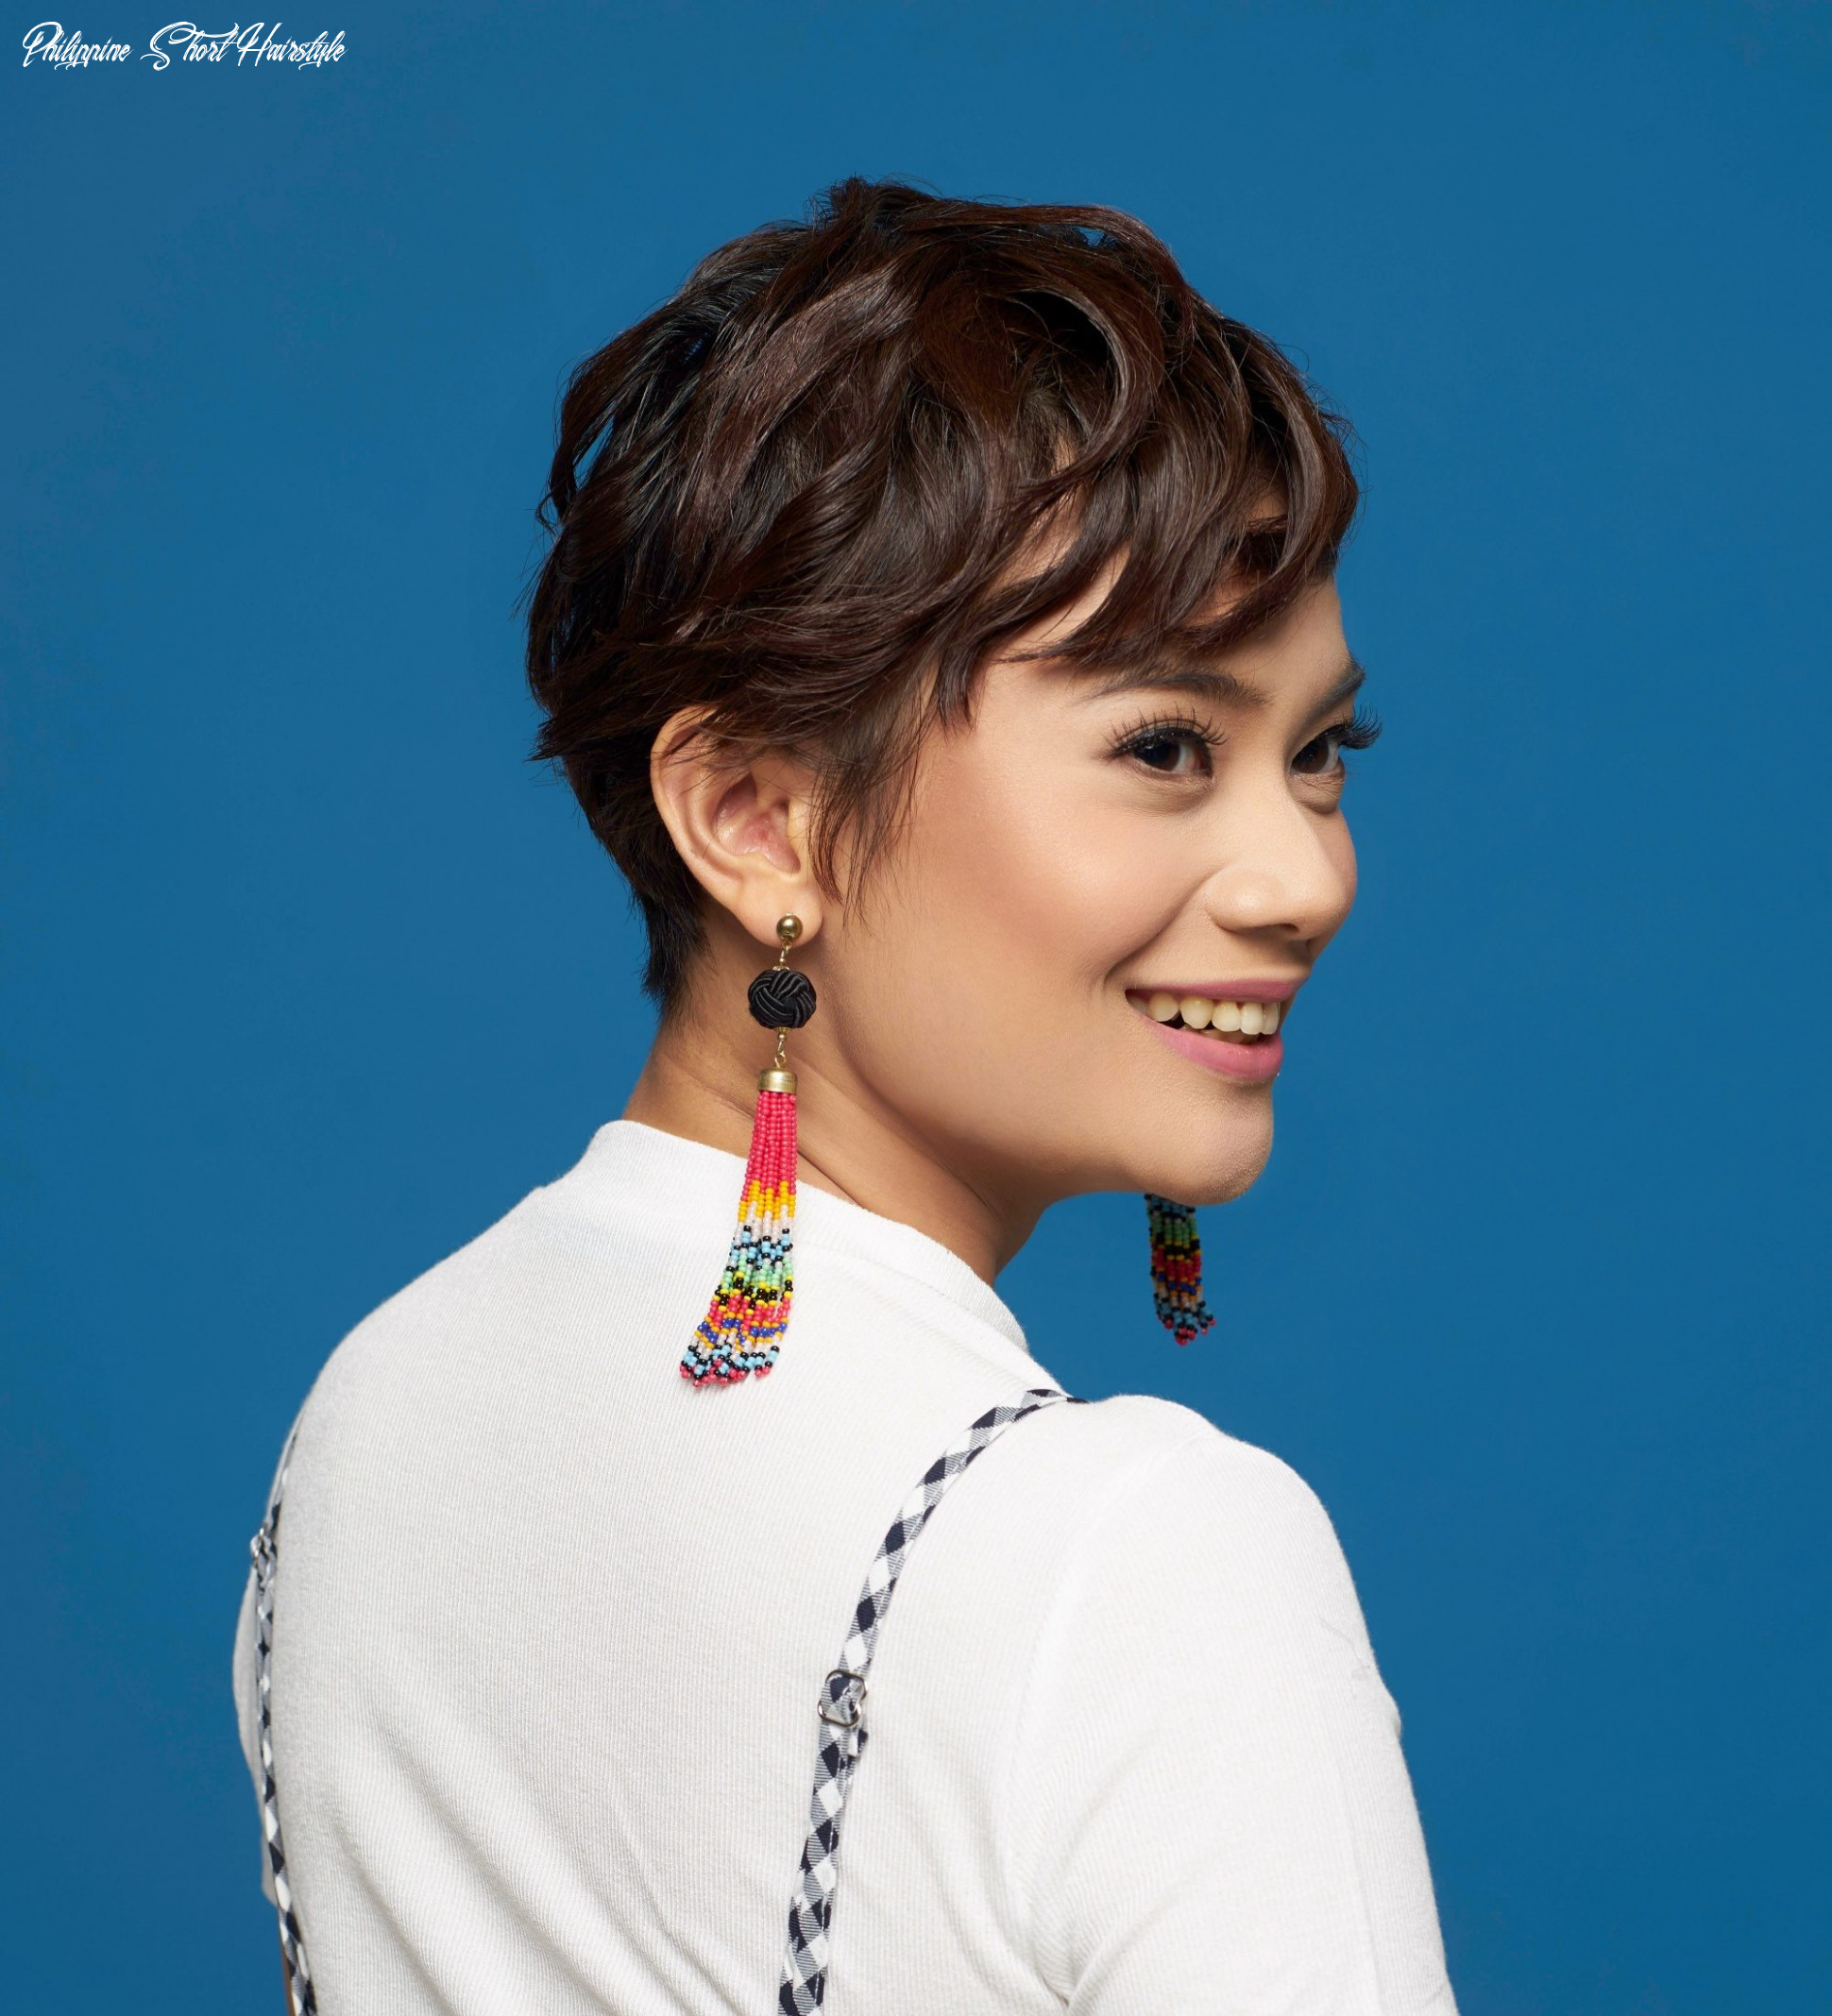 11 Best Short Hairstyles for Pinays | All Things Hair PH